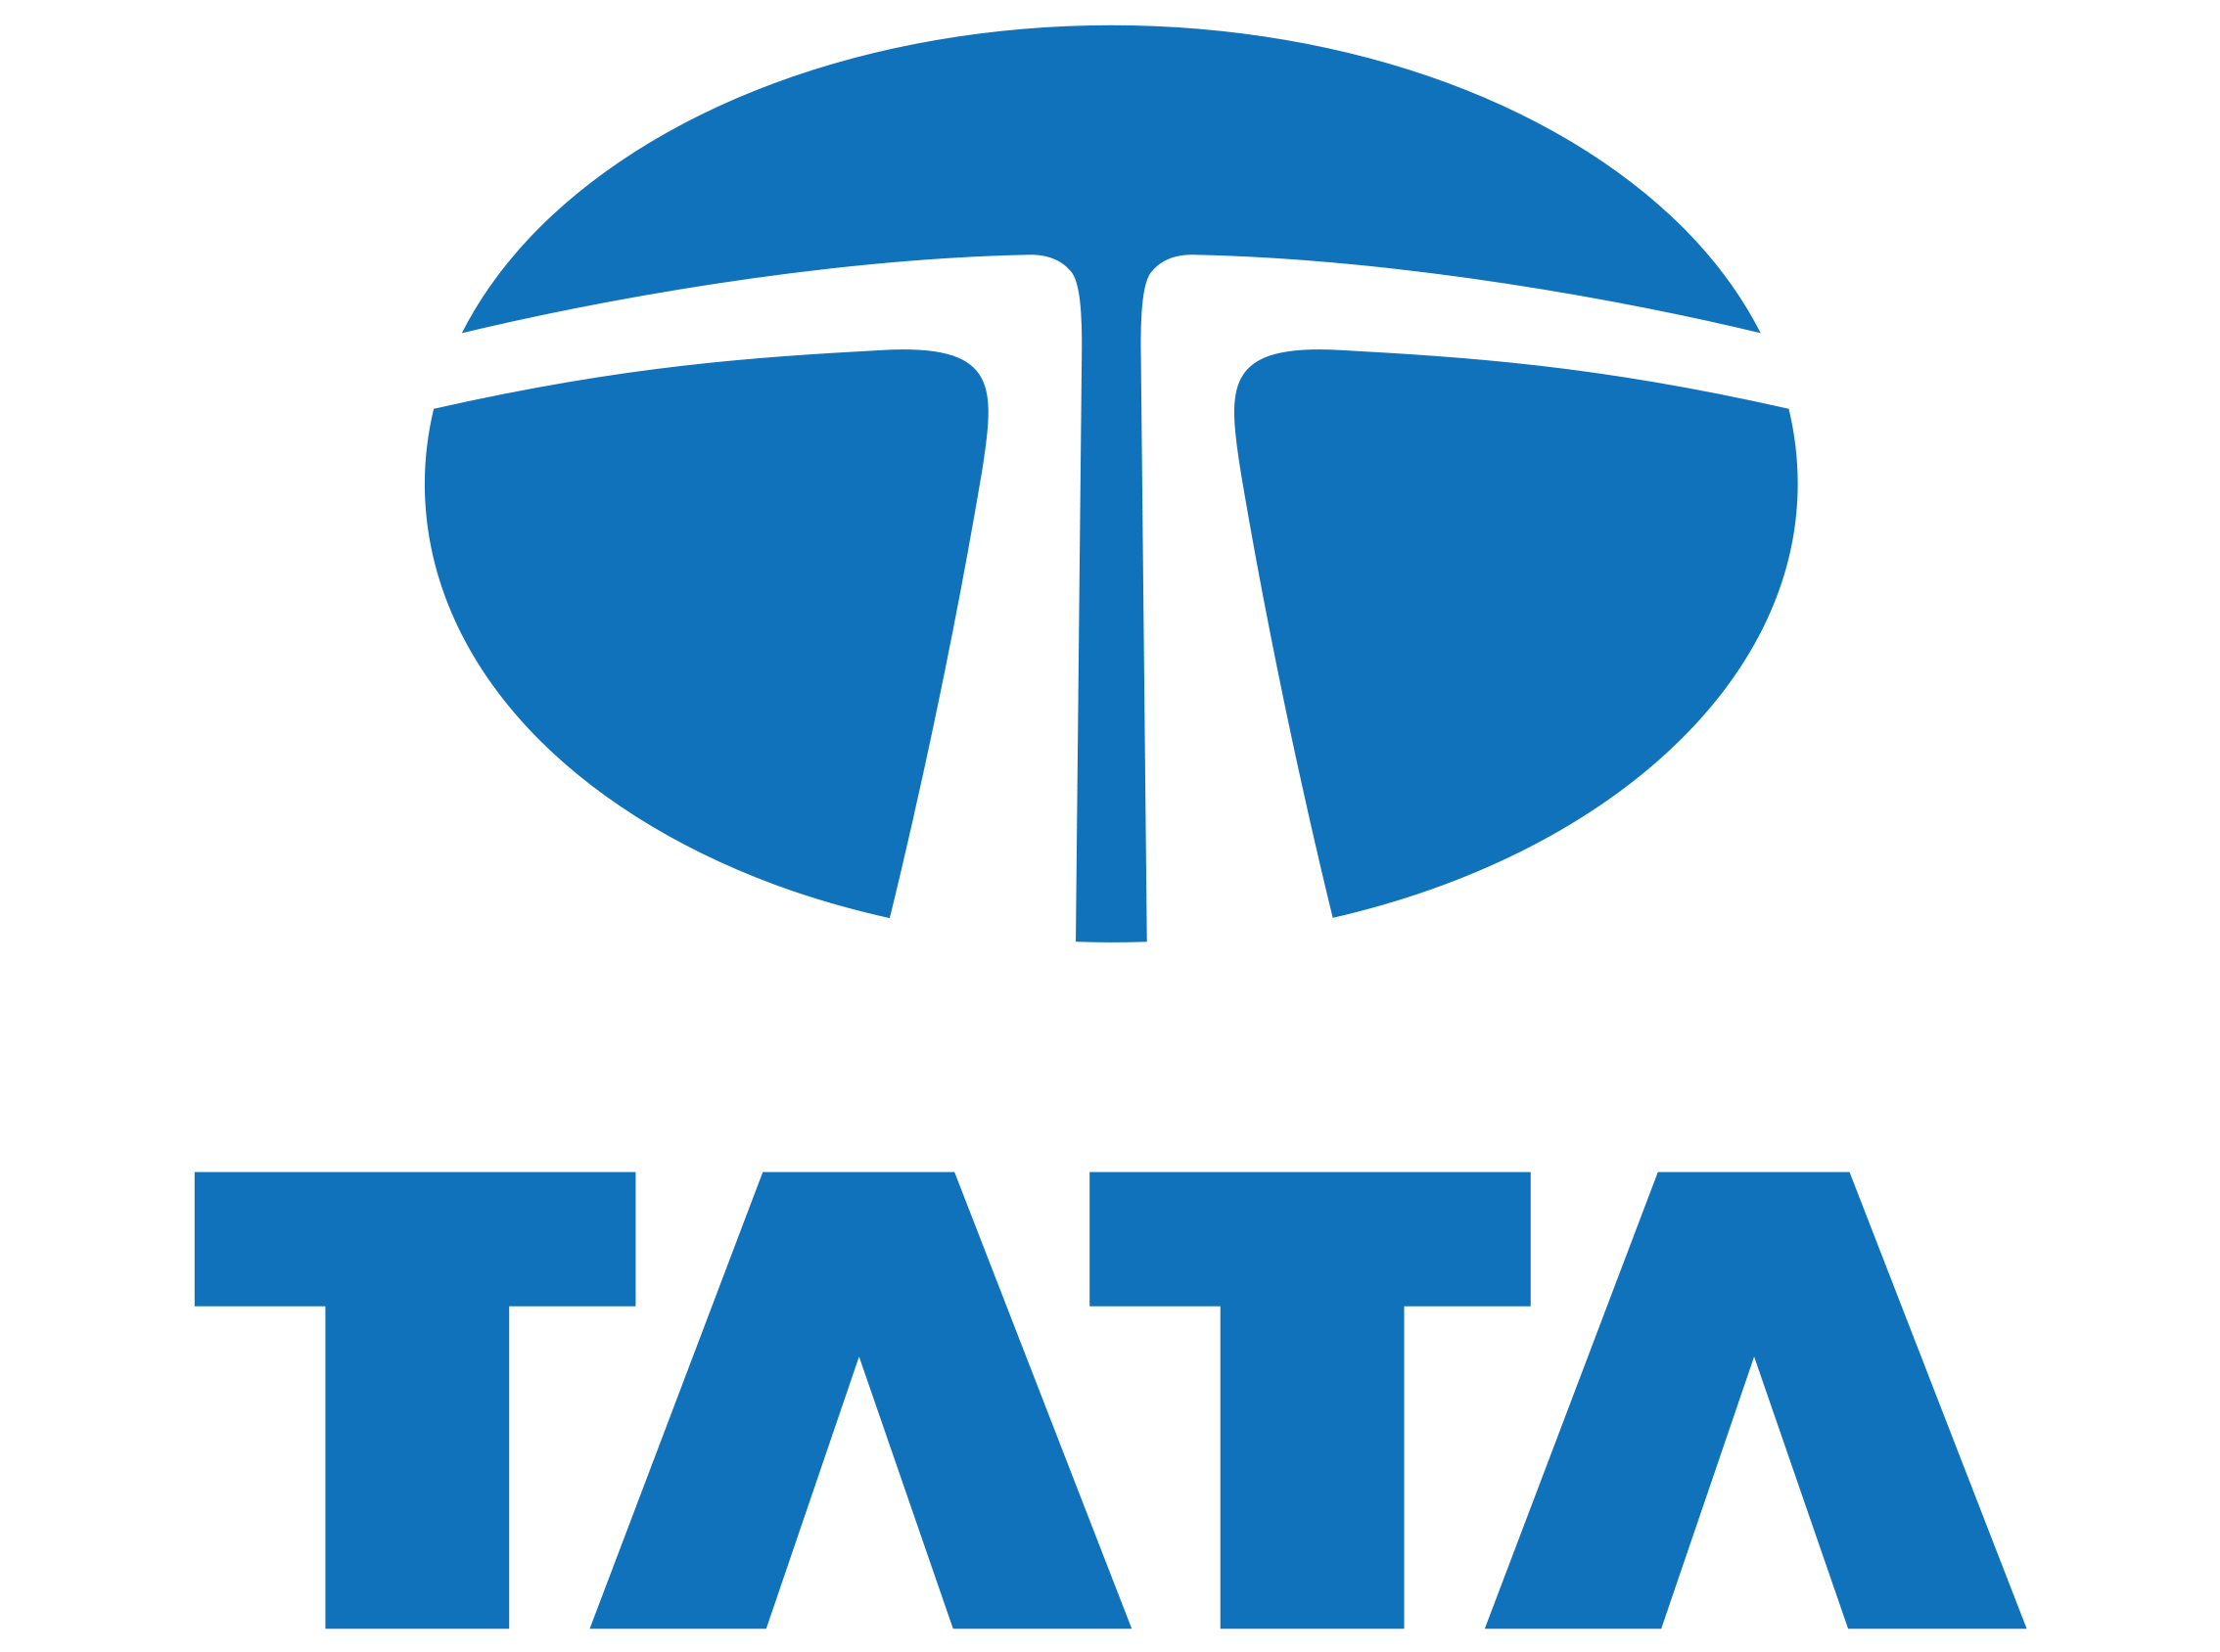 tata company Get all the latest news and updates on tata group only on news18com read all  news including political news, current affairs and news headlines online on.